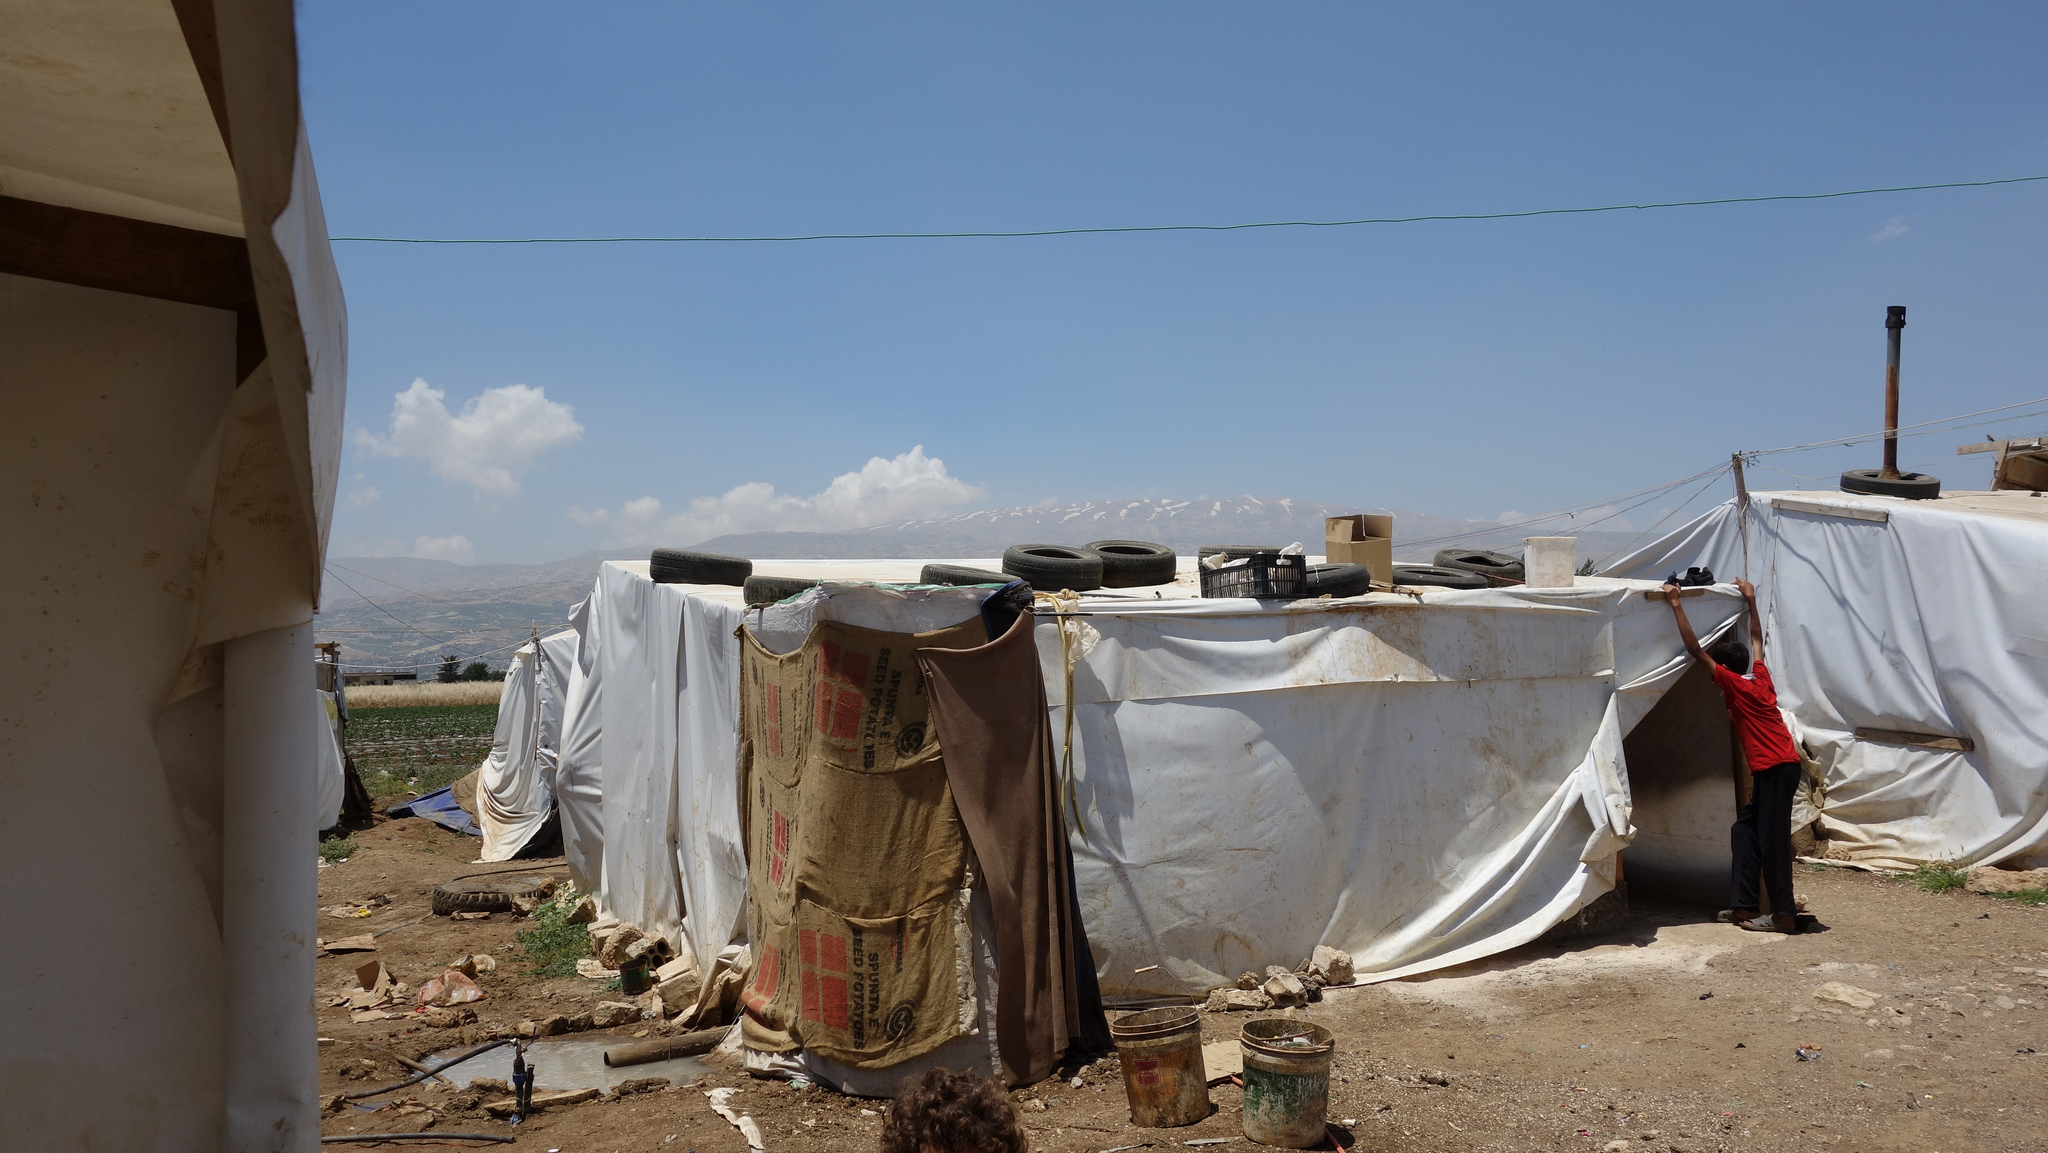 Lockdowns in Lebanon Means More Suffering for Refugees